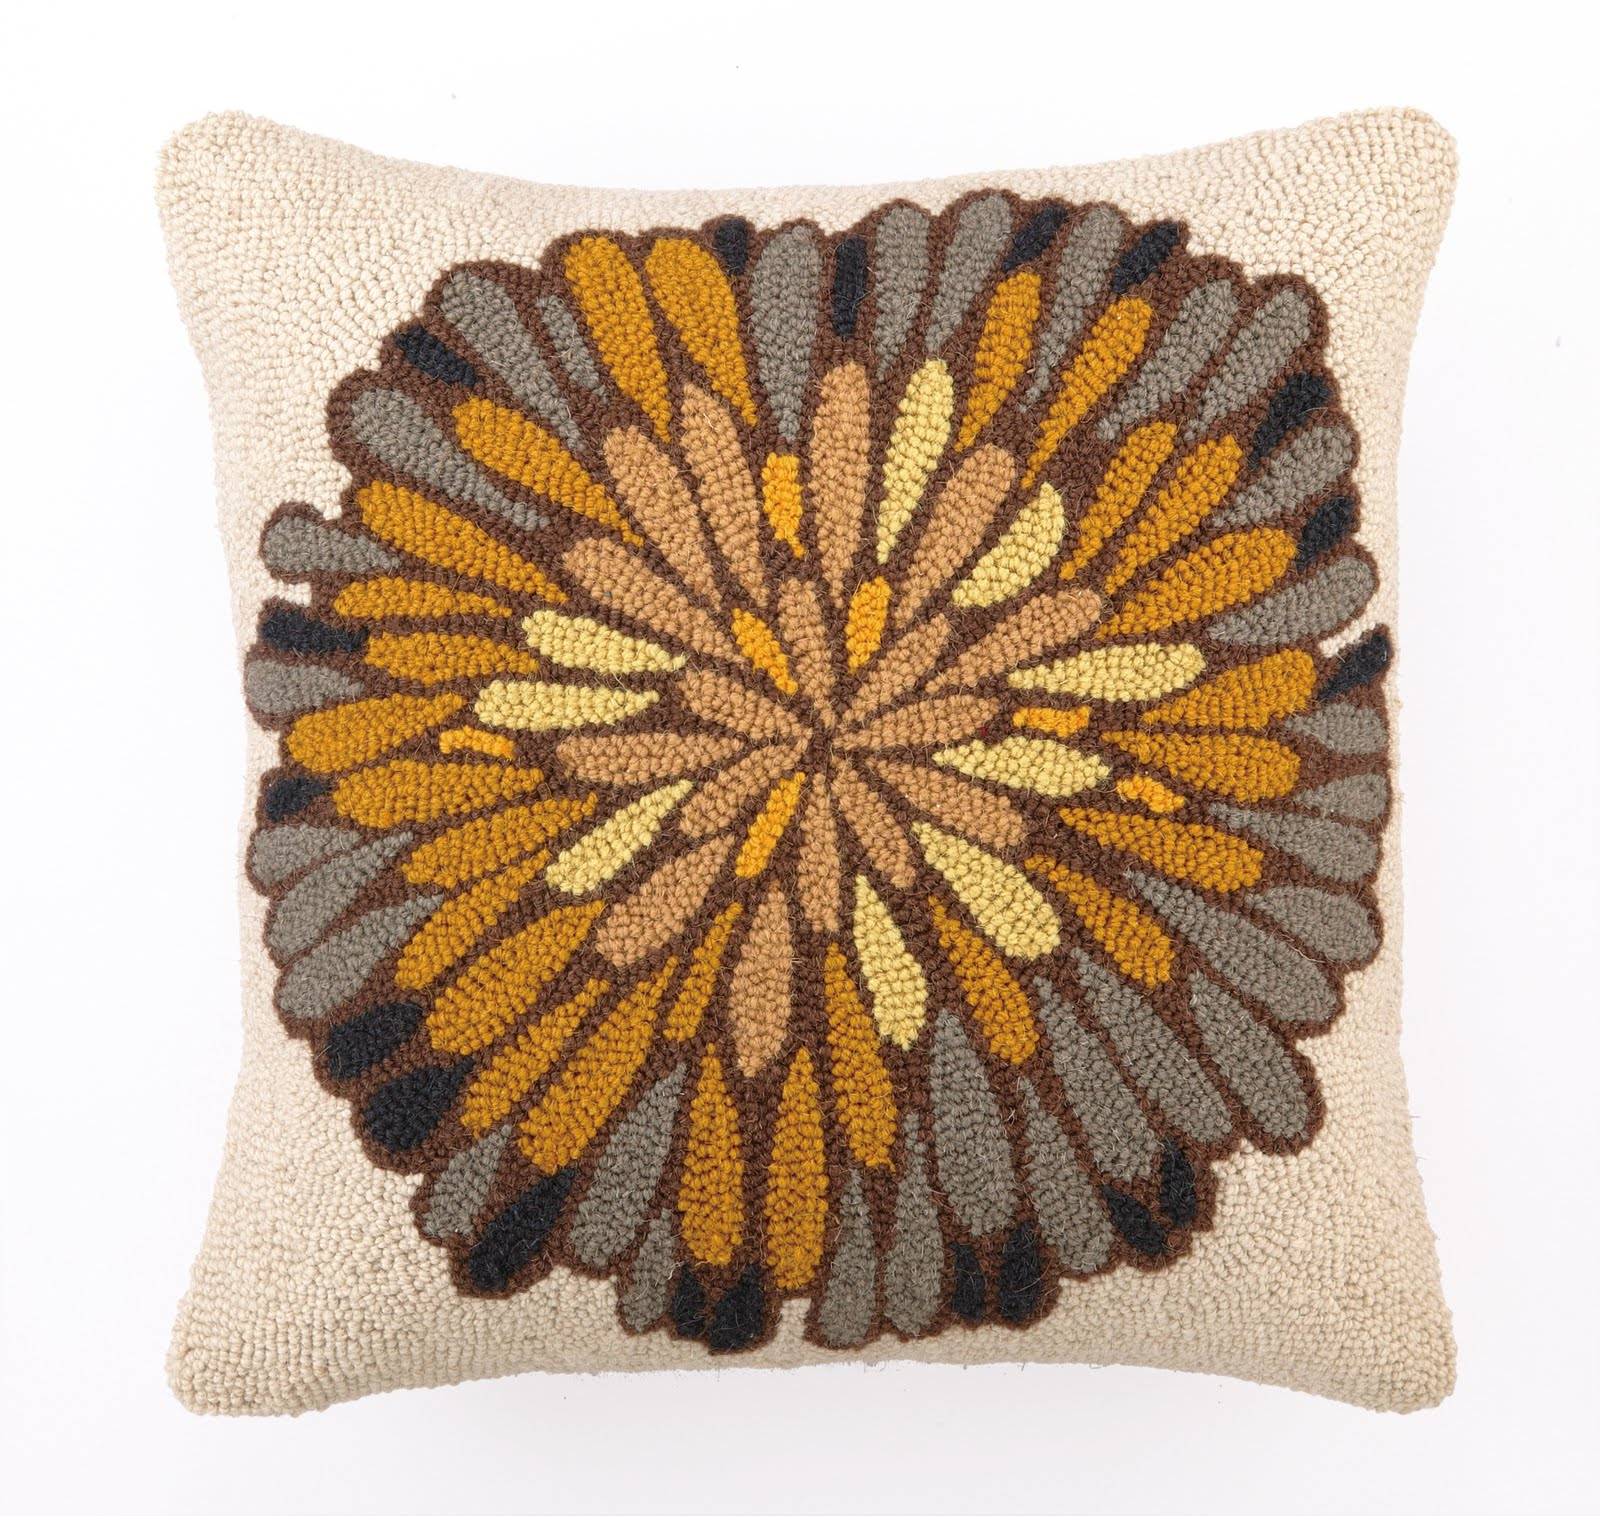 Throw Pillows With Matching Rug : Gift & Home Today: Throw rugs and matching pillows by Valori Wells Furniture Gifts Home ...